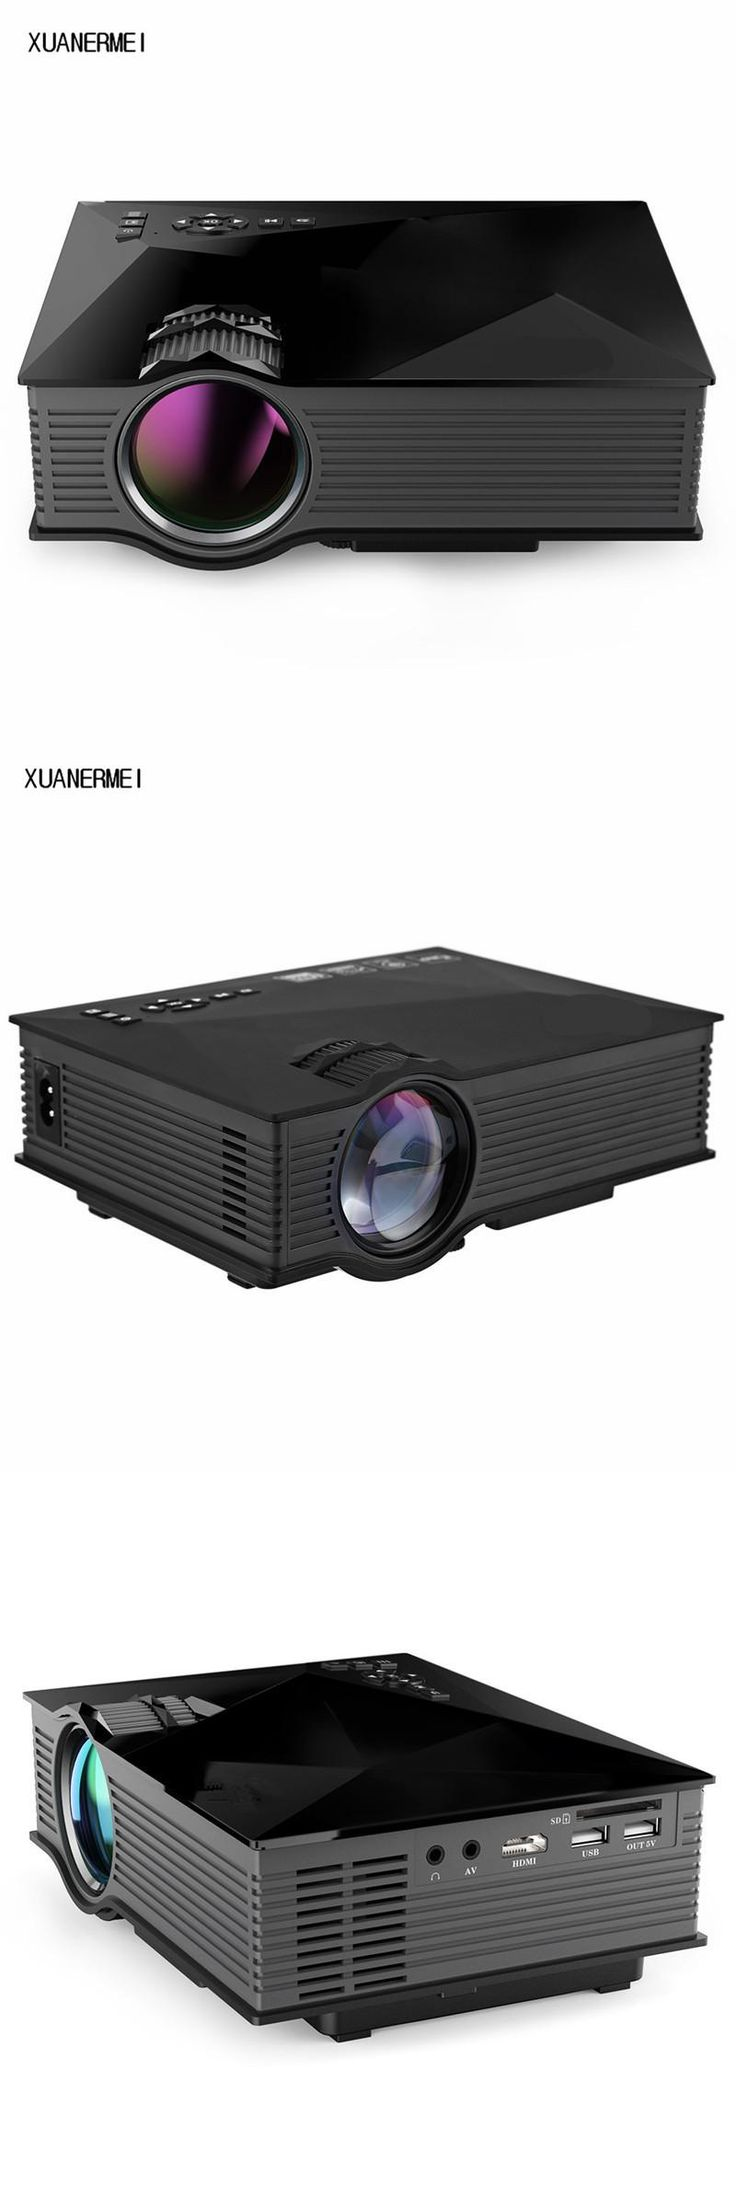 [Visit to Buy] XUANERMEI UC46 MINI Portable LED Projector For Video Games TV Home Theater Movie proyector Support HDMI VGA AV SD Free shipping #Advertisement